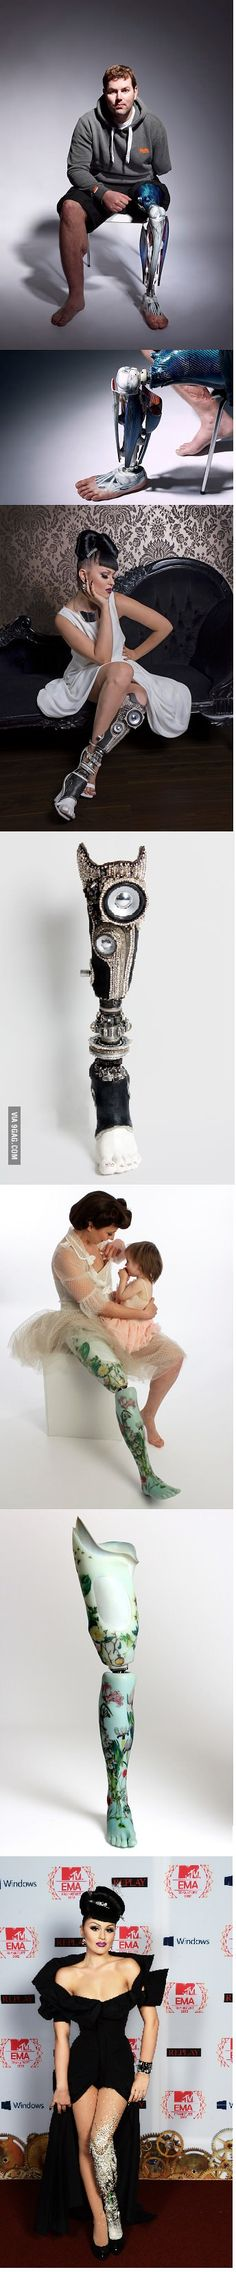 Cool stuff ~ designer prosthetics